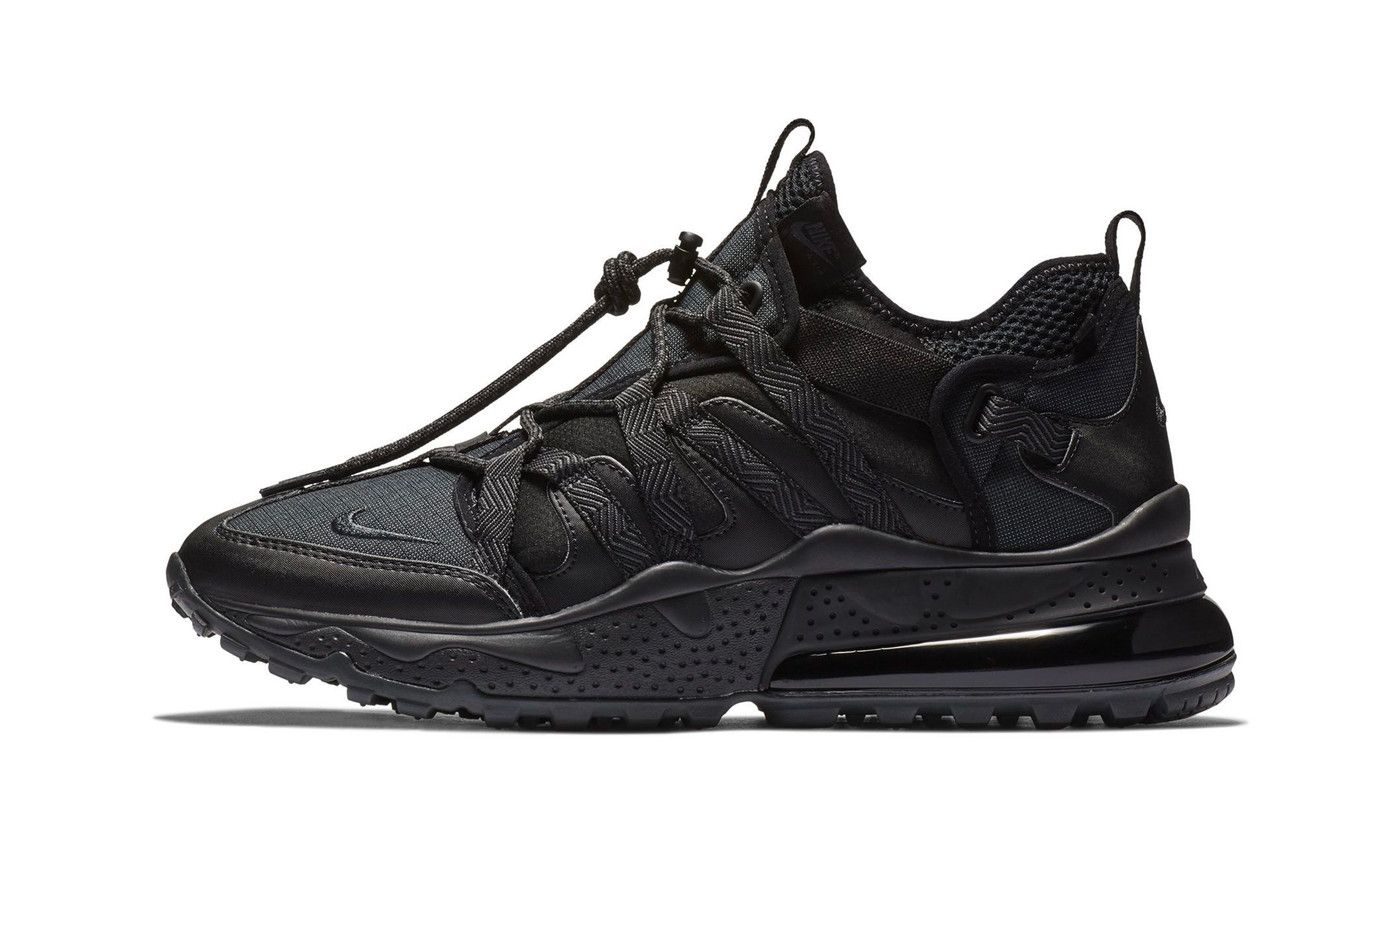 """Nike Covers the Air Max 270 Bowfin in a Slick """"Triple Black"""" Color ... 1db322ef8"""